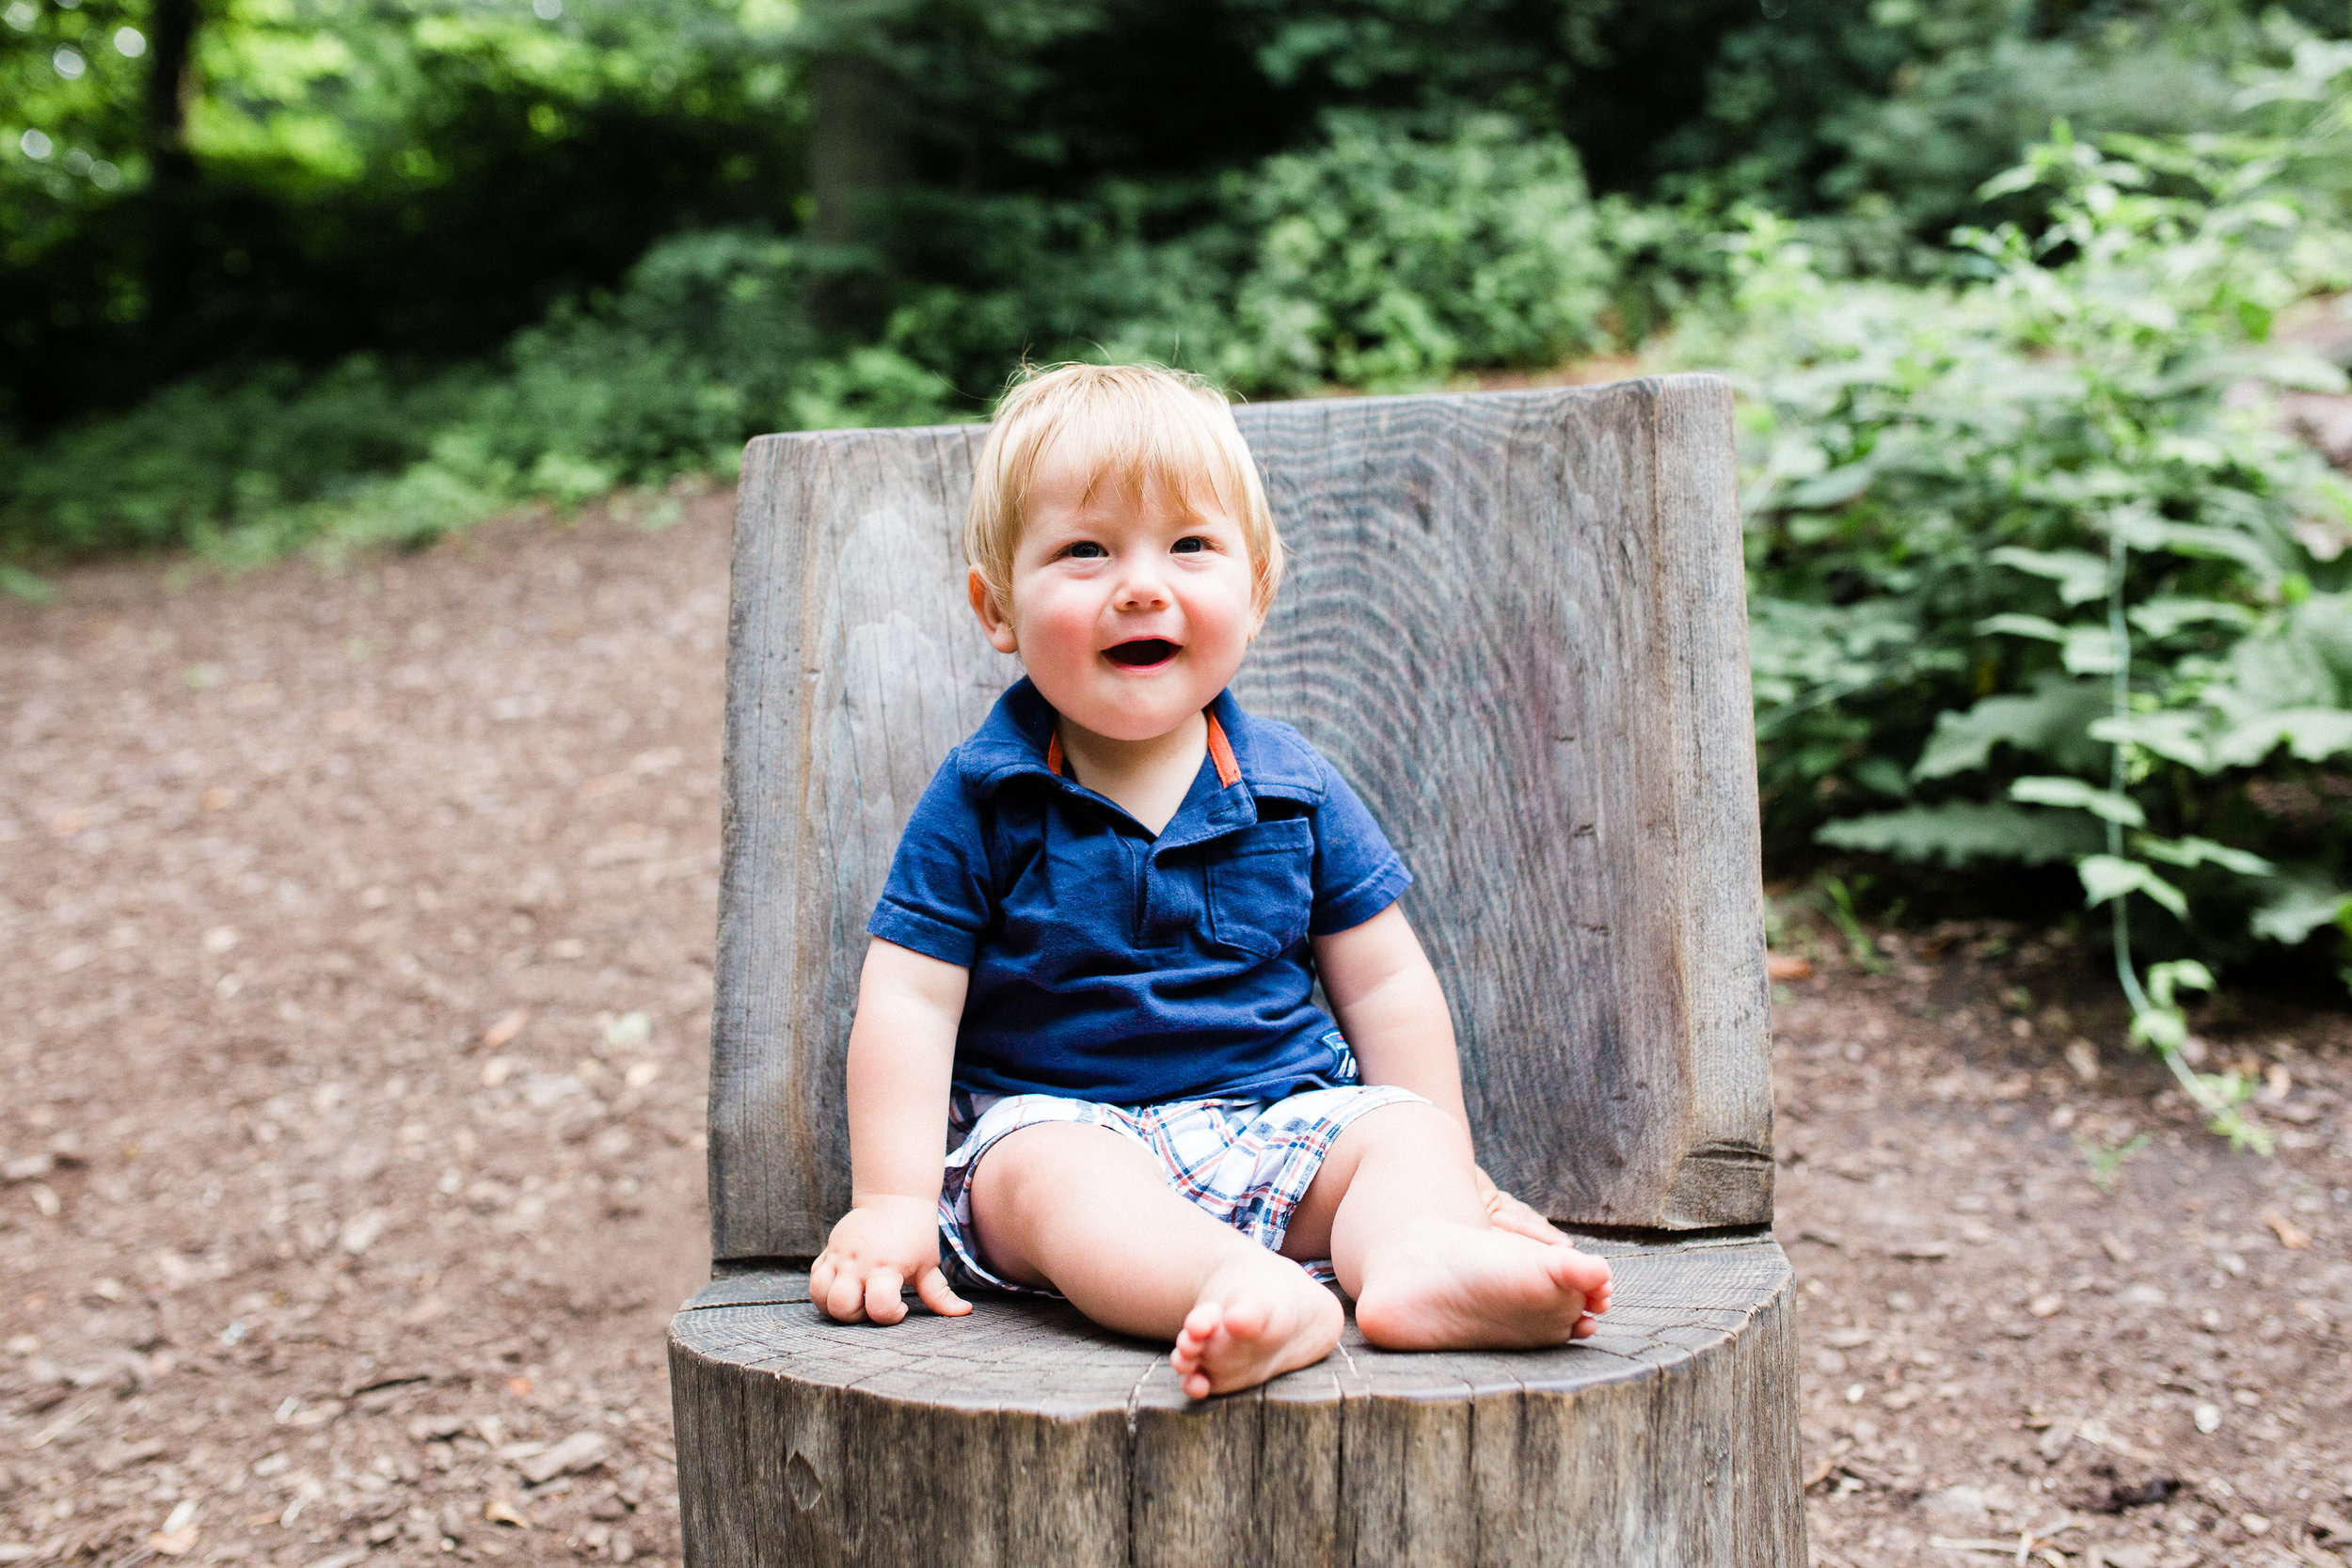 prospect-park-family-photography_natural-playground-4-2.jpg